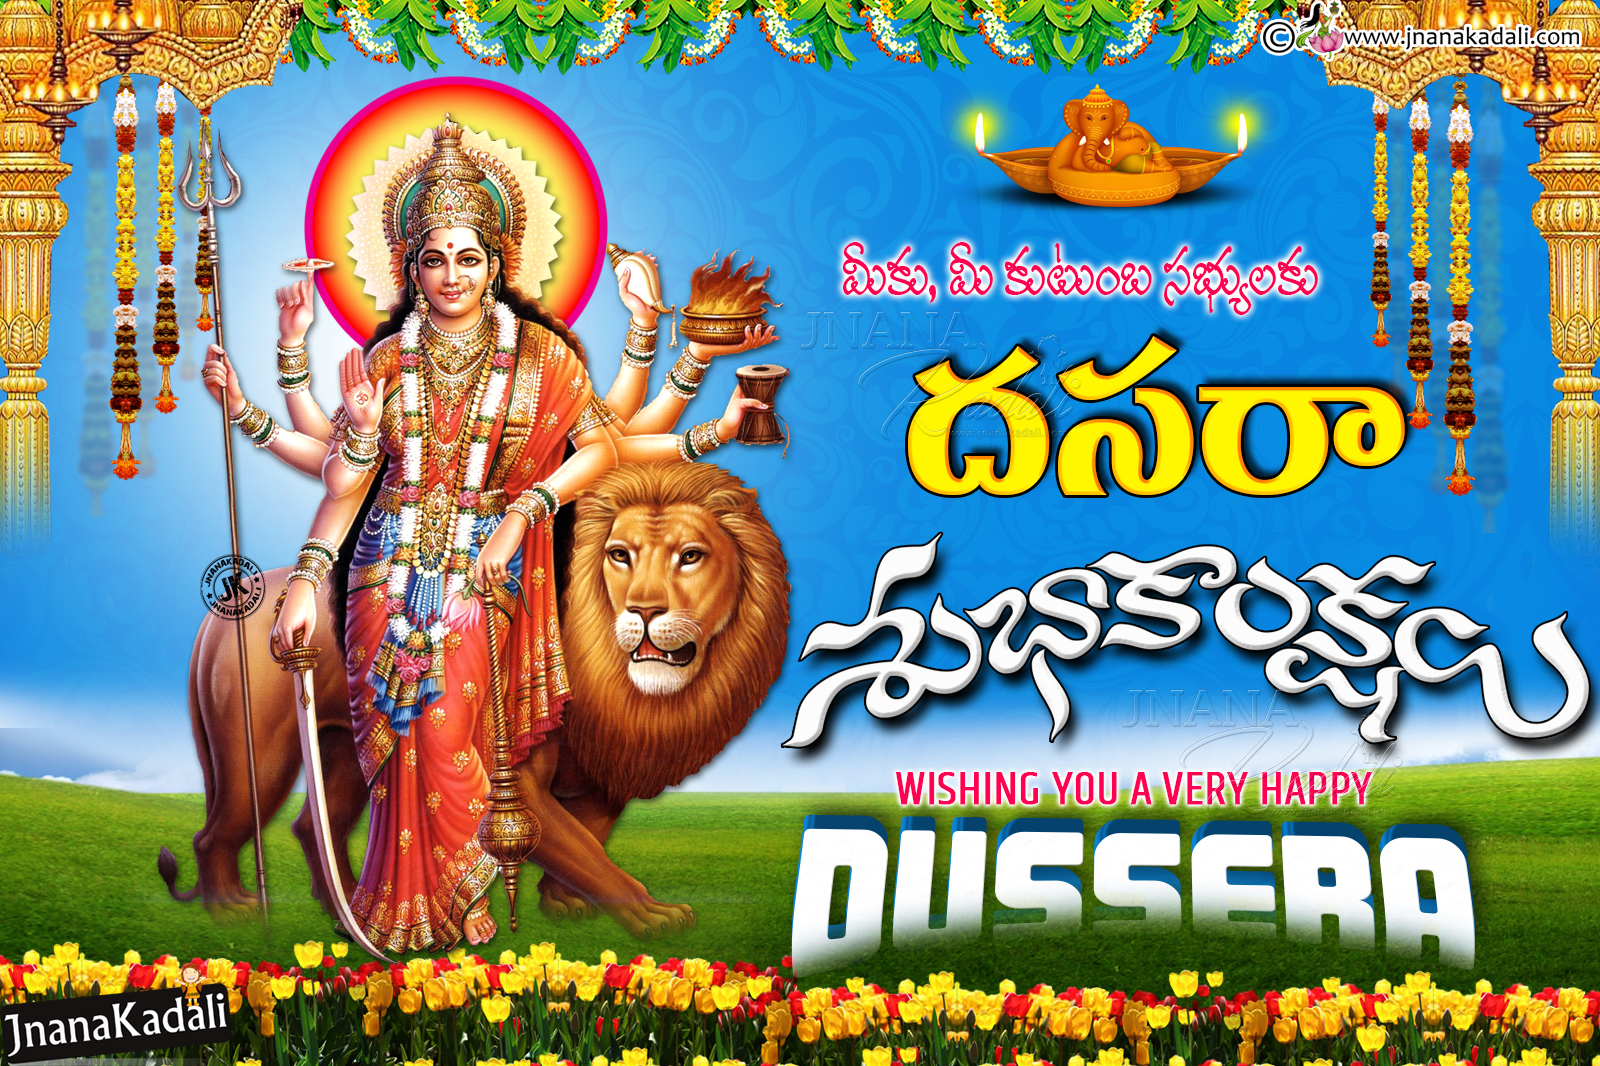 Latest online happy dasara greetings quotes hd wallpapers in telugu dussehra wishes quotes hd wallpapers in telugu telugu dussehra wallpapers greetings telugu dussehra wallpapers m4hsunfo